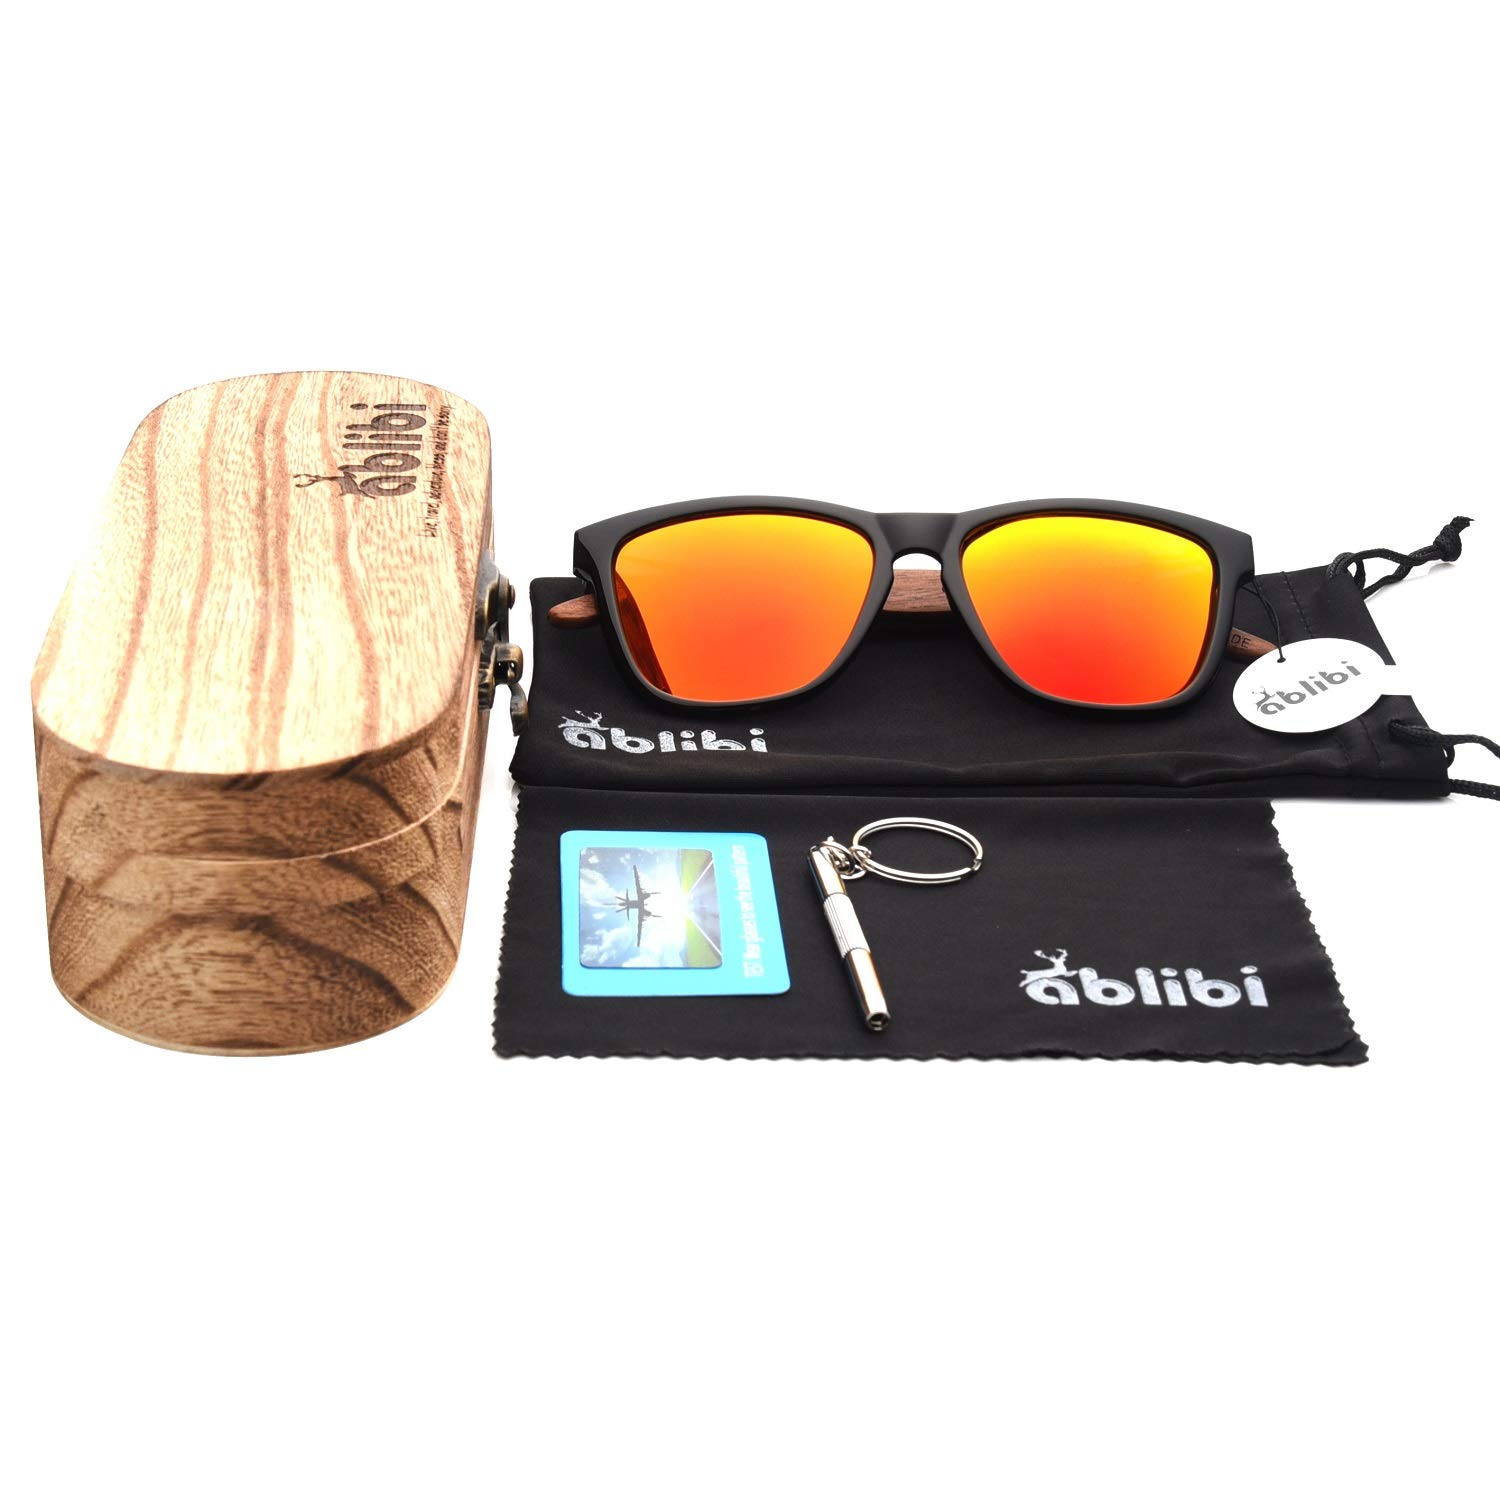 Wooden Sunglasses,Ablibi Polarized Mens Wood Sunglasses Handmade Lightweight Shades with Wooden Box(golden)